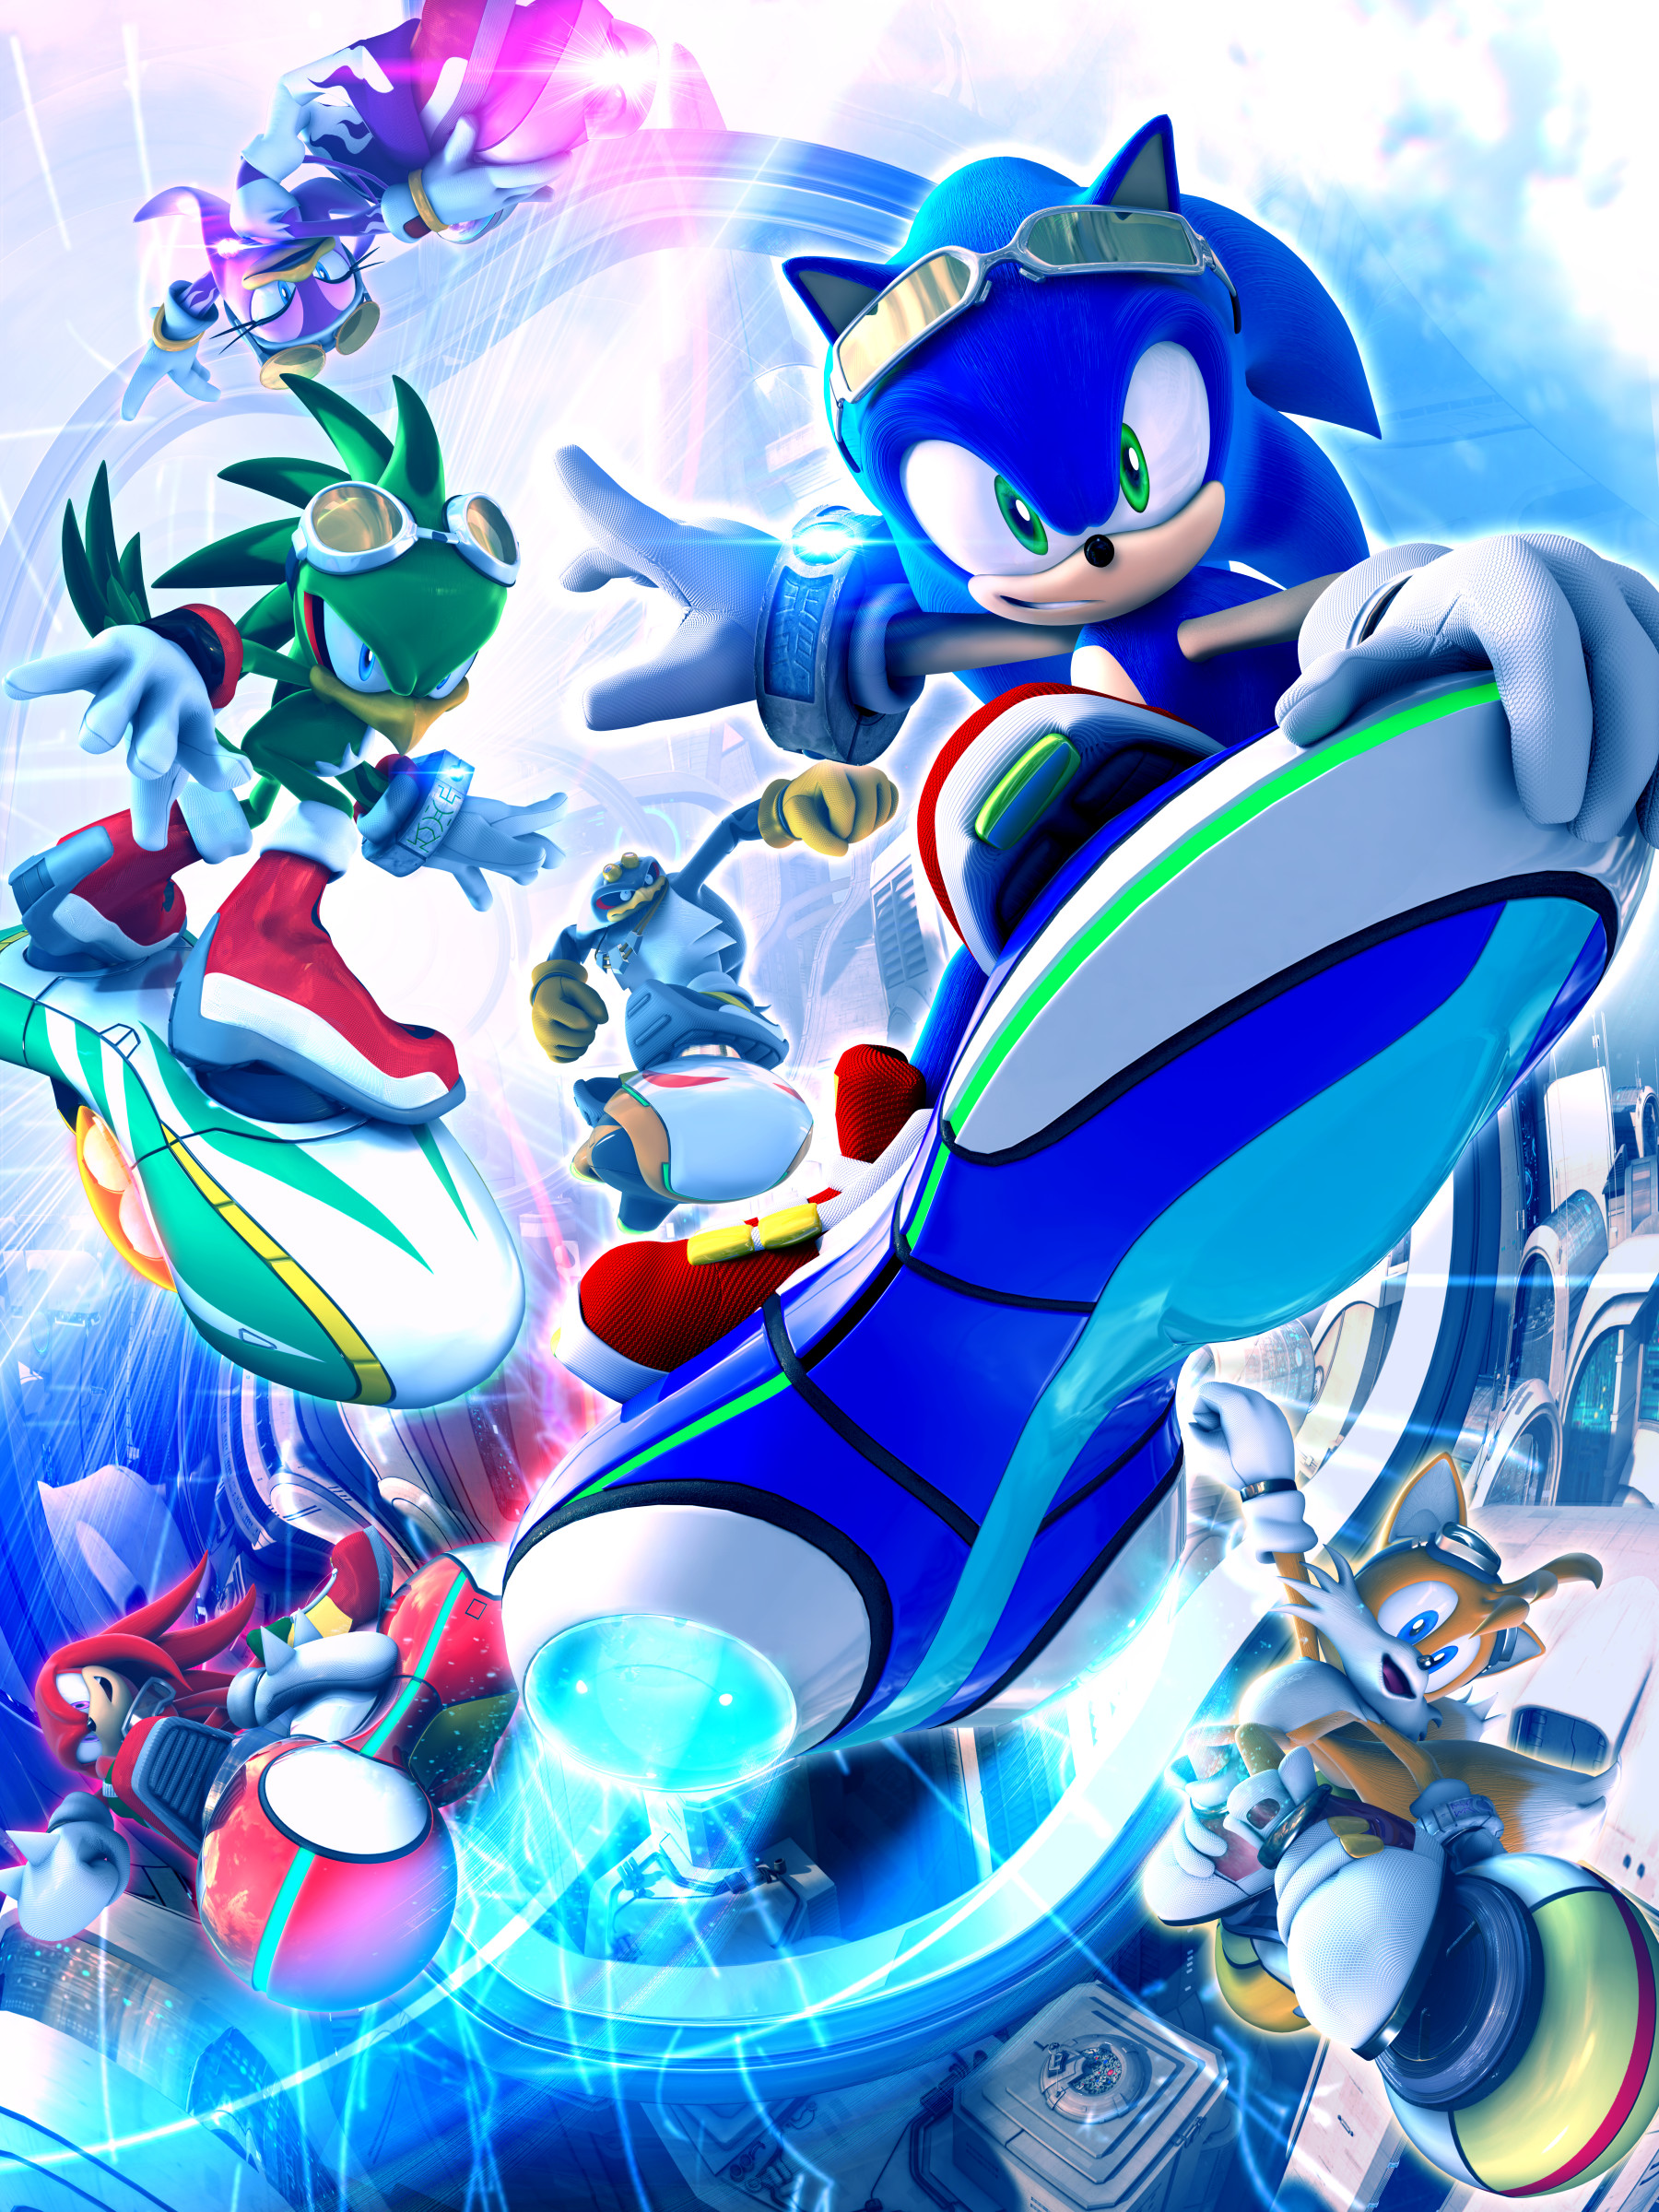 https://info.sonicretro.org/images/e/…_cover_art.png